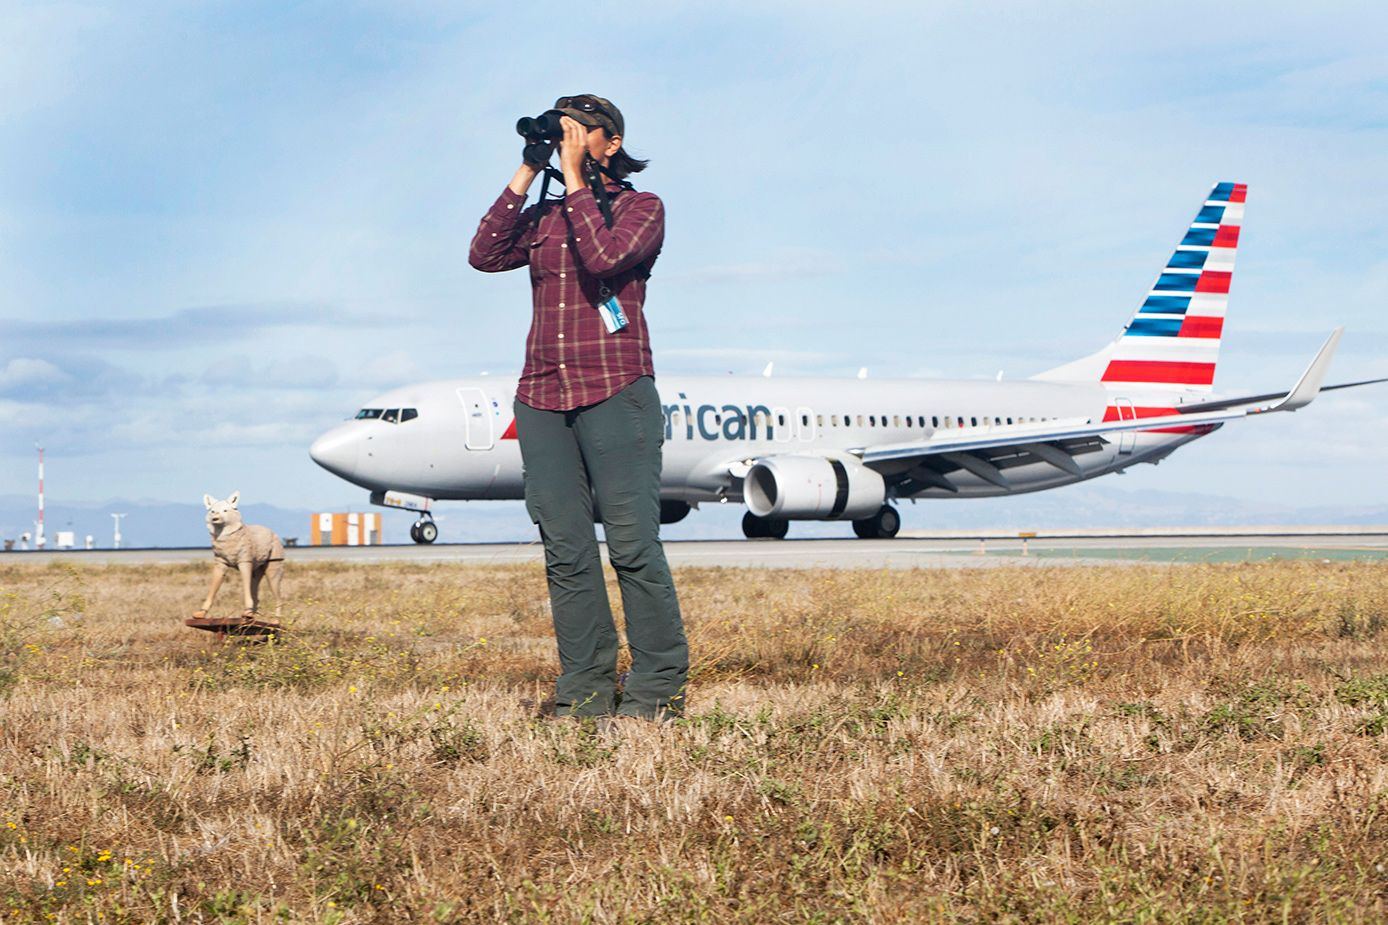 Natalie Reeder, SFO's full-time staff biologist, is part of a 36-person airport safety officer (ASO) team at SFO that has developed a three-tiered plan to keep animals away from flight paths